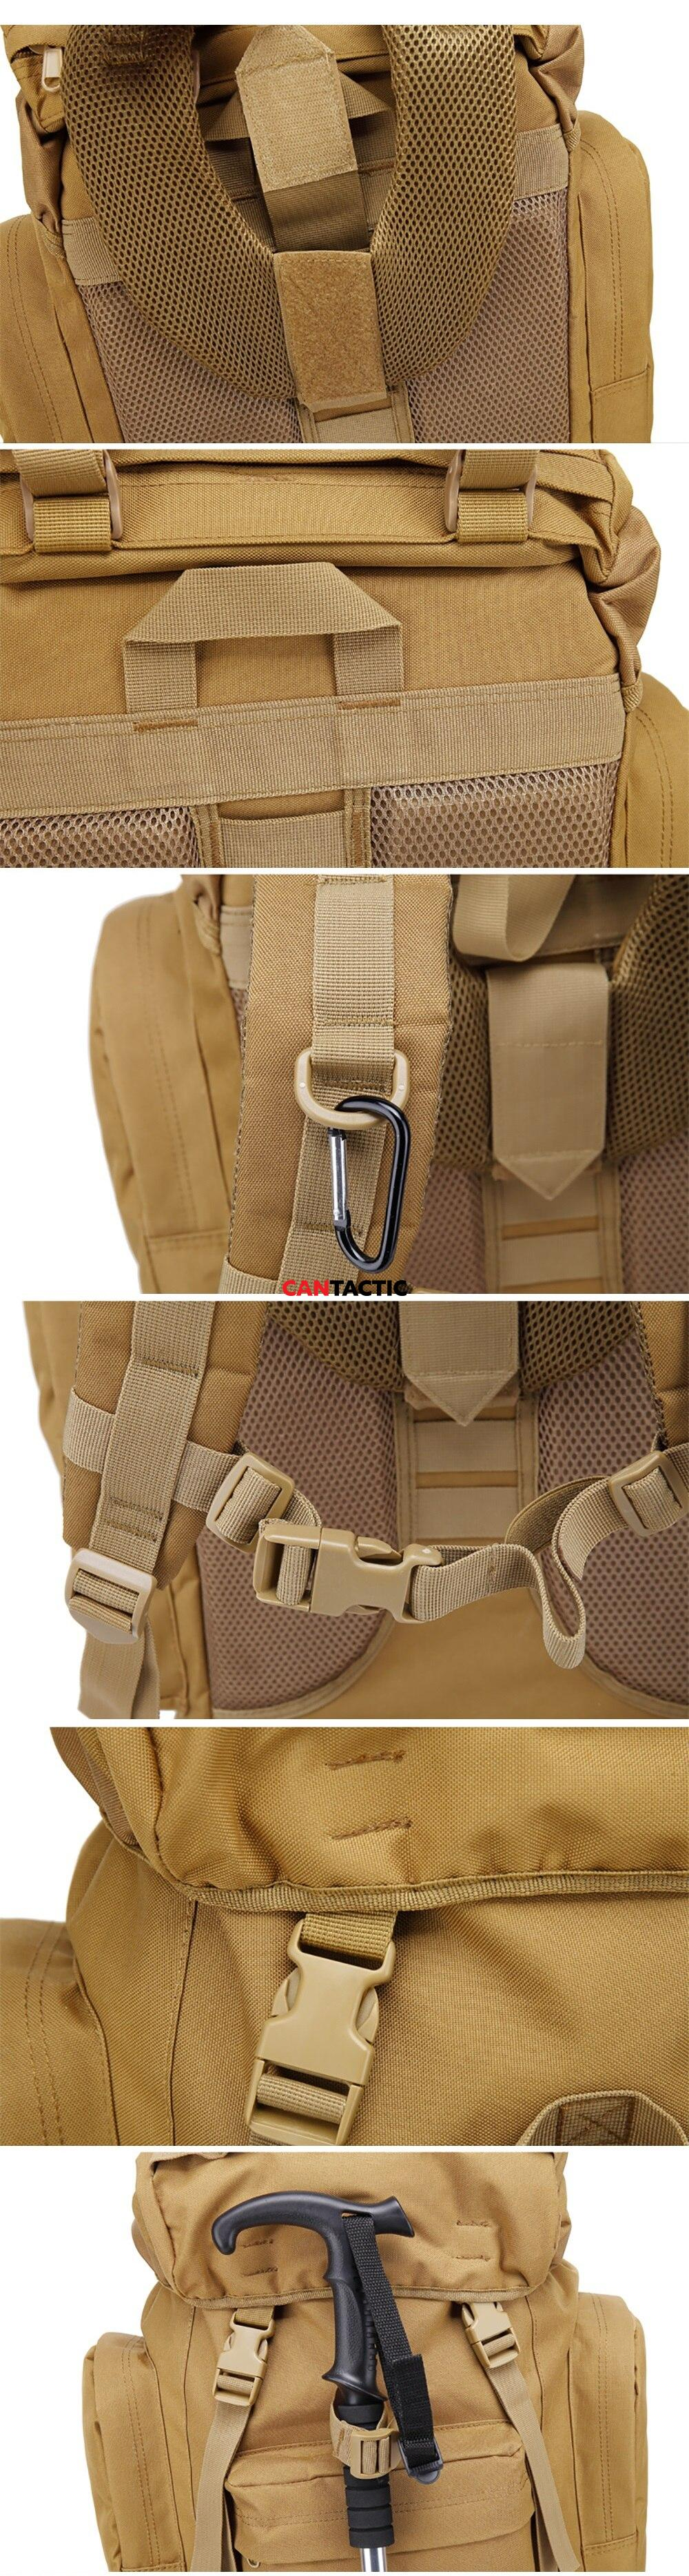 65L Internal Frame Waterproof Giant Tactical Backpack Military Rucksack